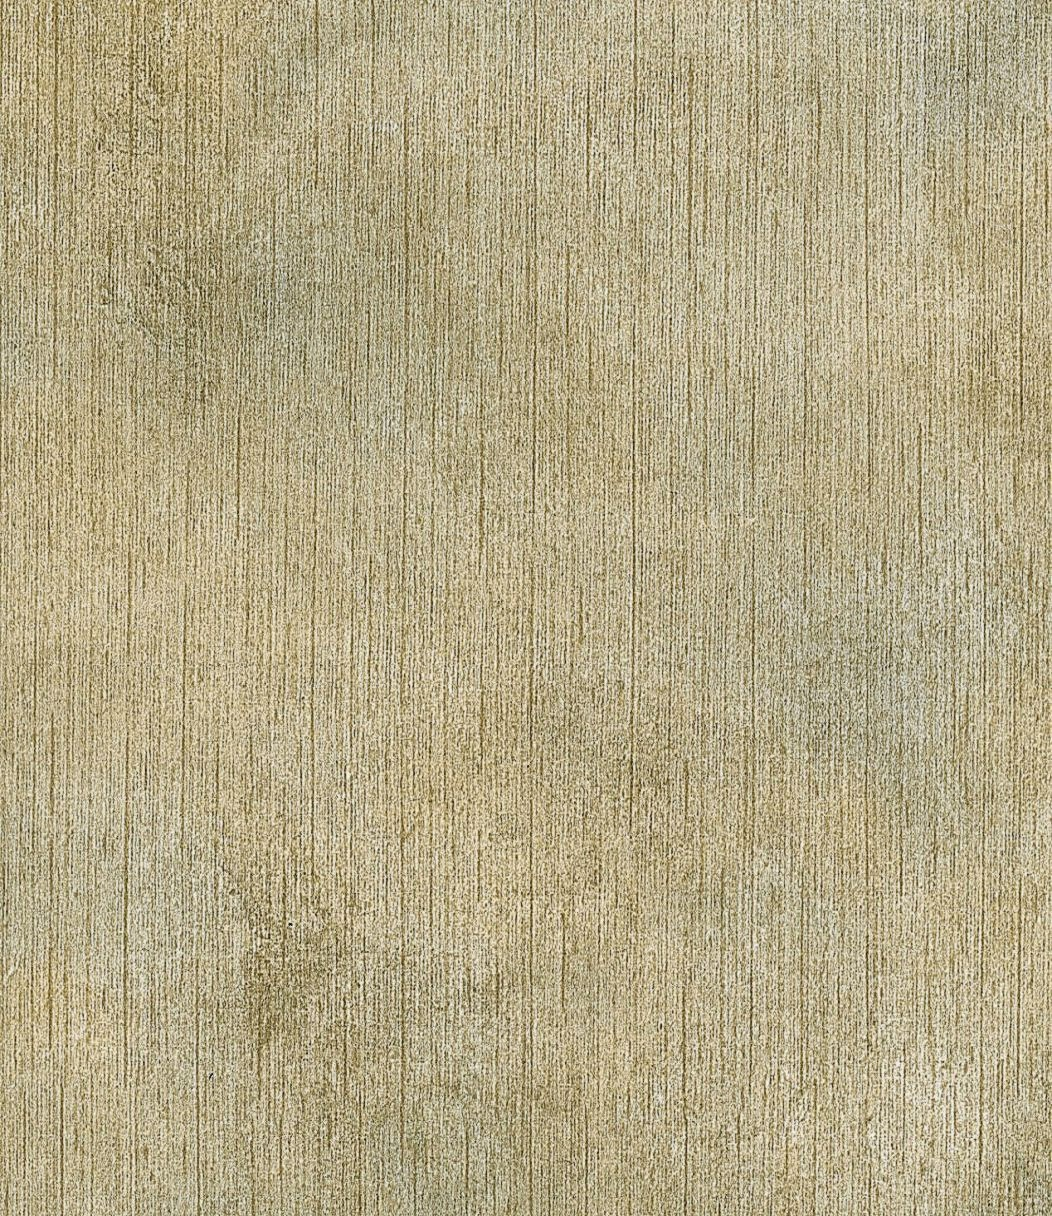 Textured wallpaper samples cool hd wallpapers for Paintable grasscloth wallpaper